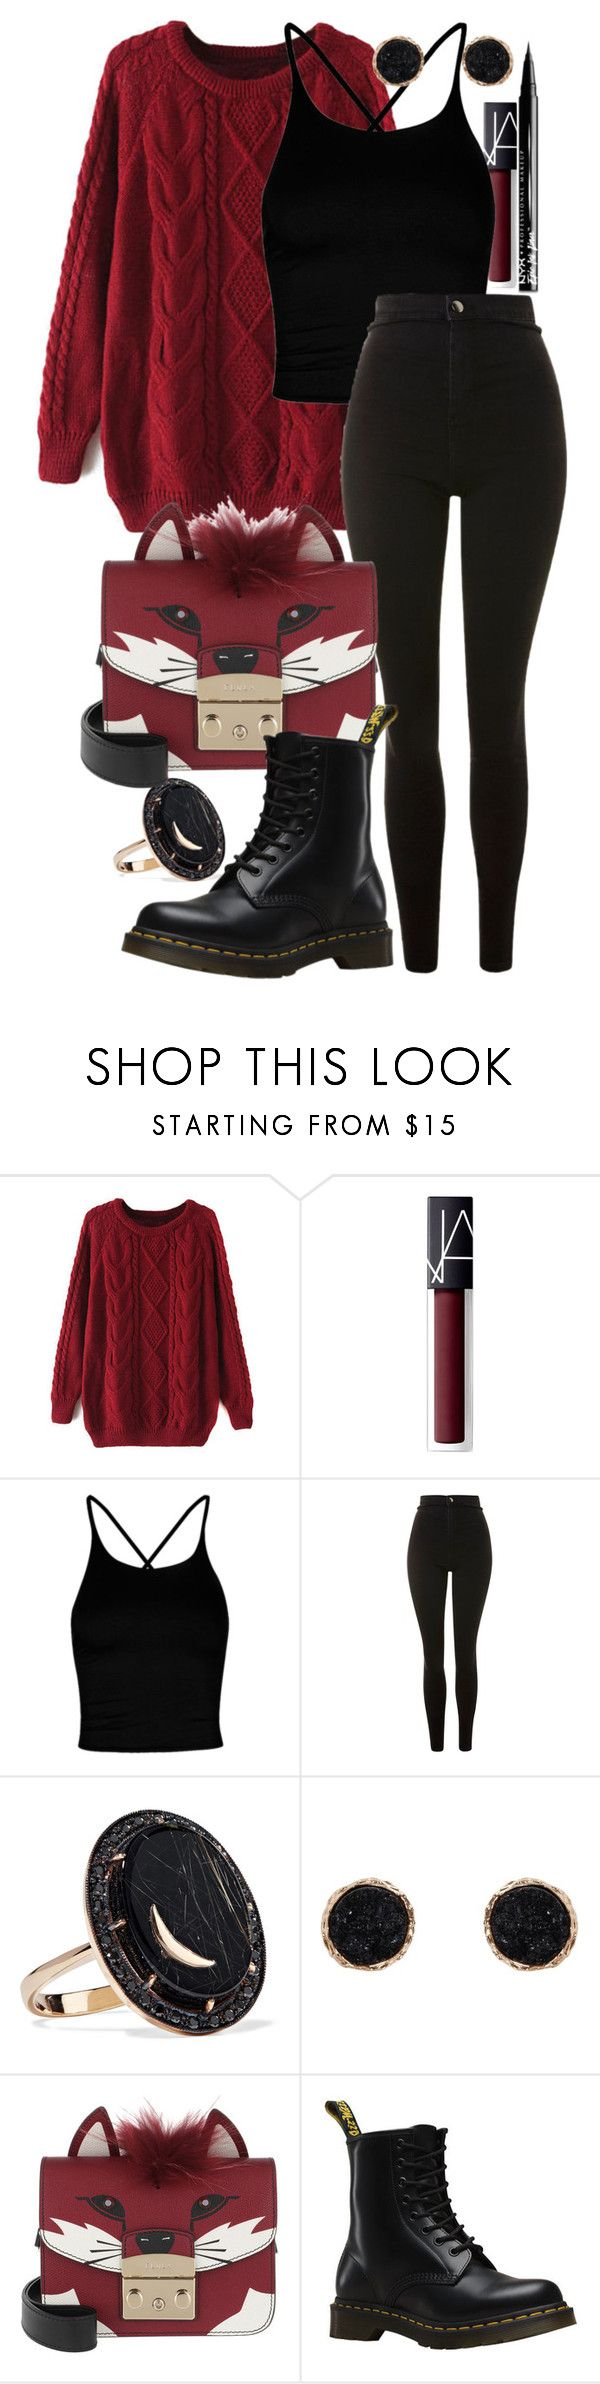 """Hello February"" by catherinetabor ❤ liked on Polyvore featuring WithChic, NARS Cosmetics, Boohoo, Topshop, Andrea Fohrman, Humble Chic, Furla, Dr. Martens and NYX"